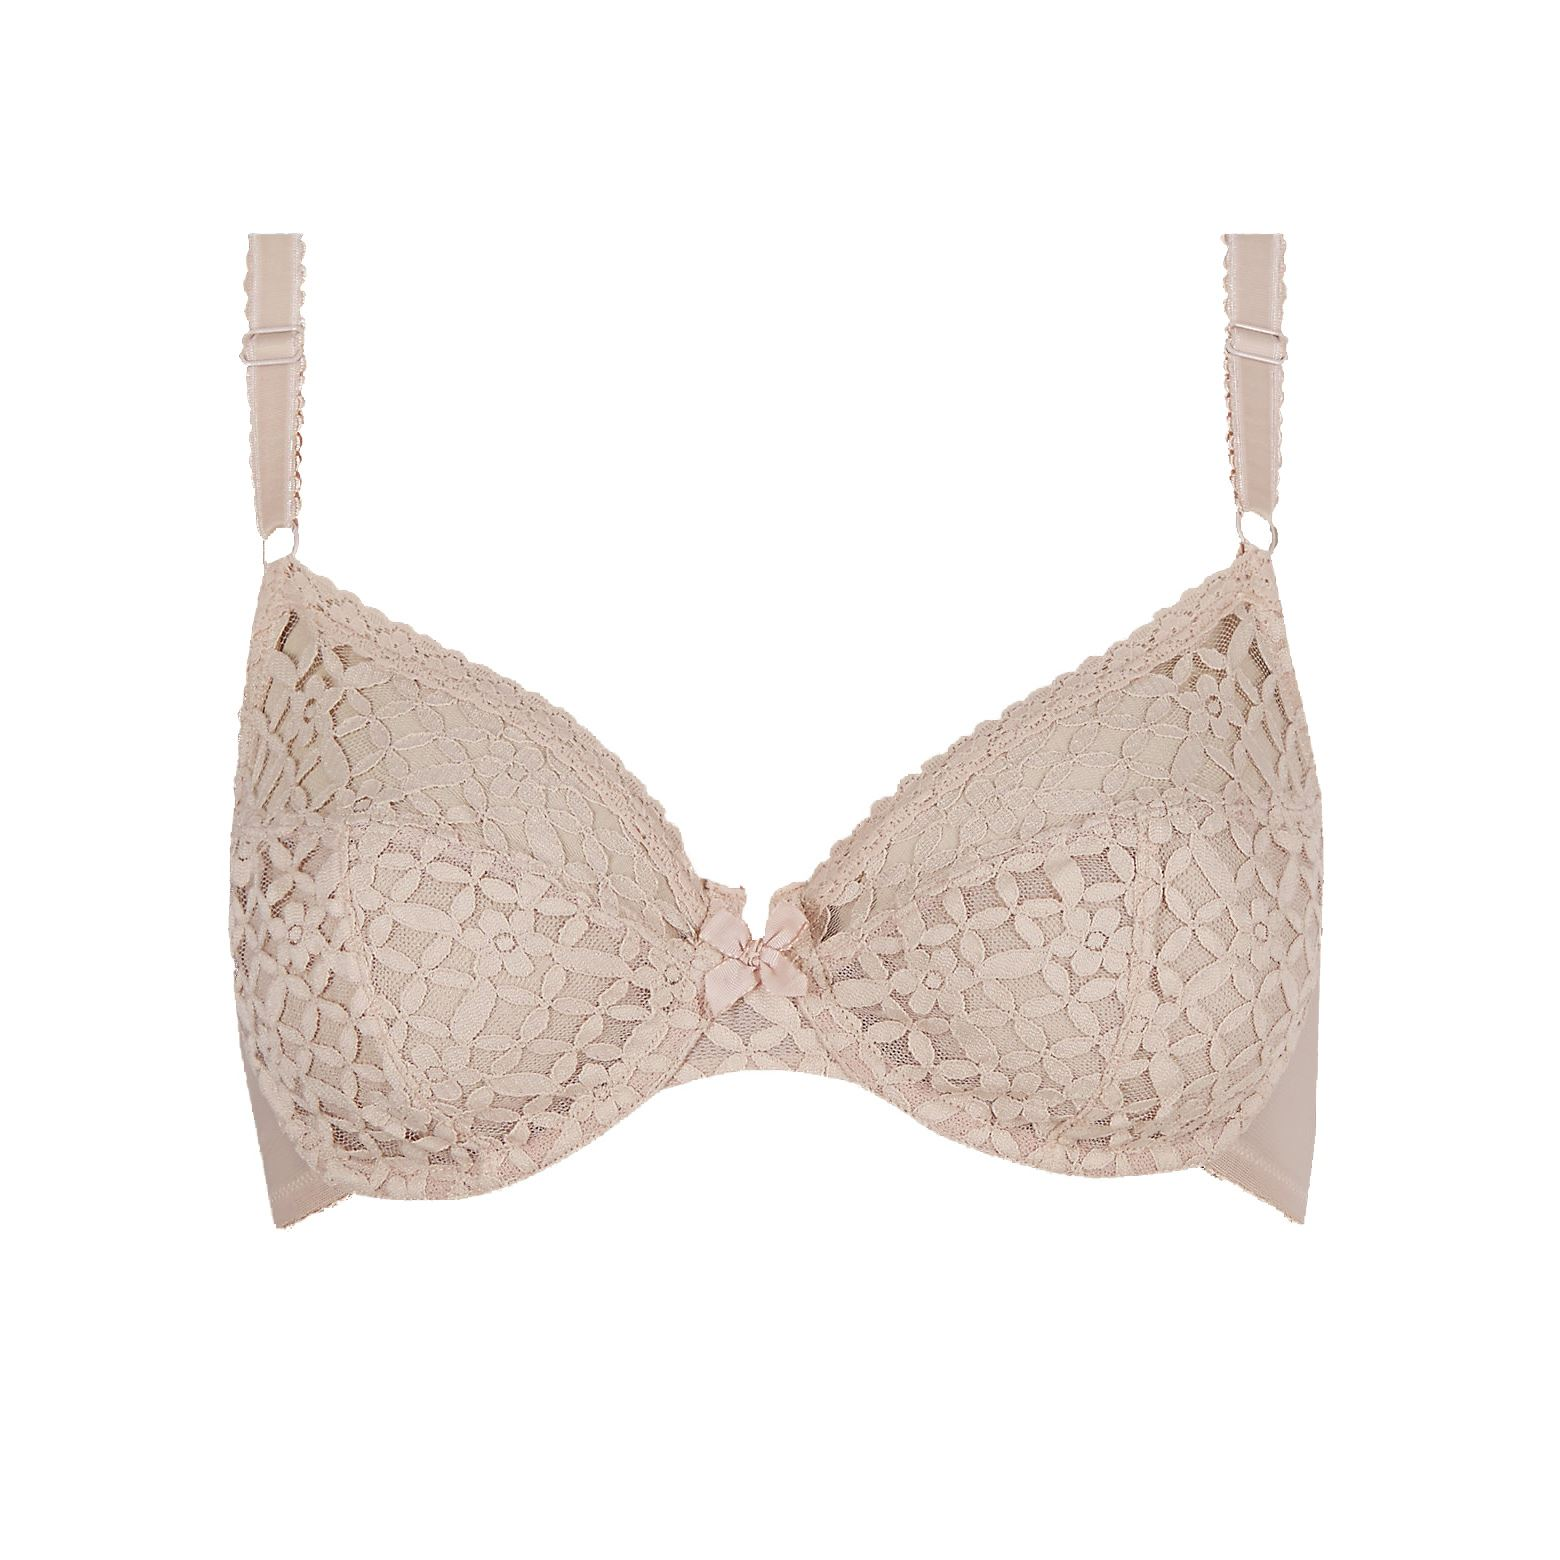 EX-M-amp-S-Marks-And-Spencer-Trellis-Lace-Underwired-Non-Padded-Full-Cup-Bra-RRP-14